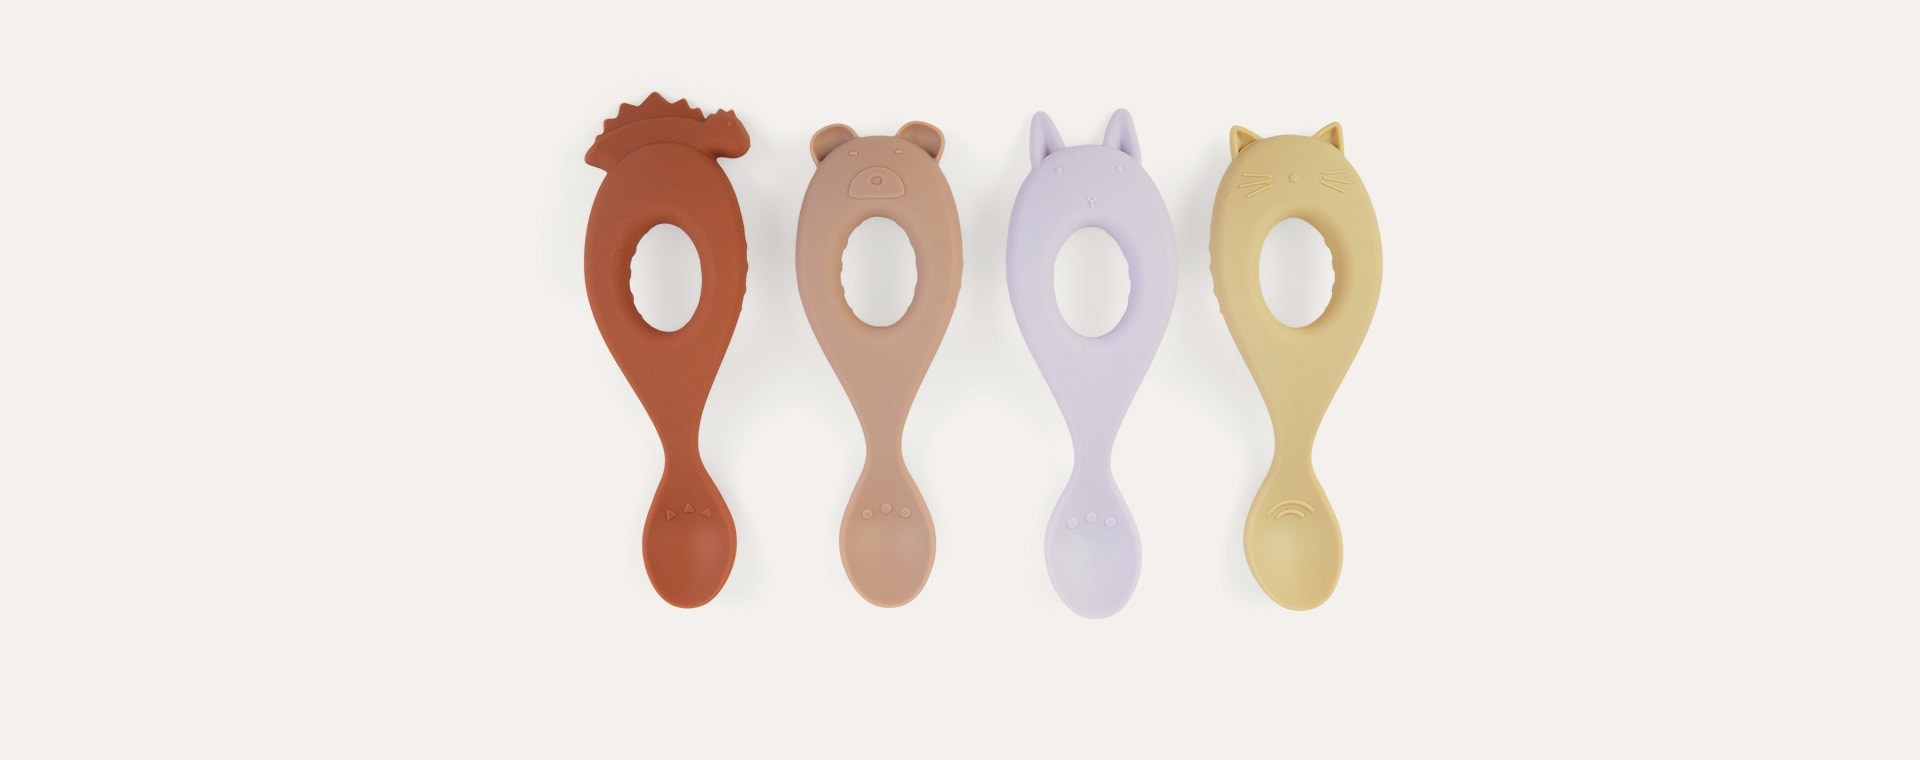 Lavender Multi Mix Liewood 4-Pack Liva Silicone Spoon